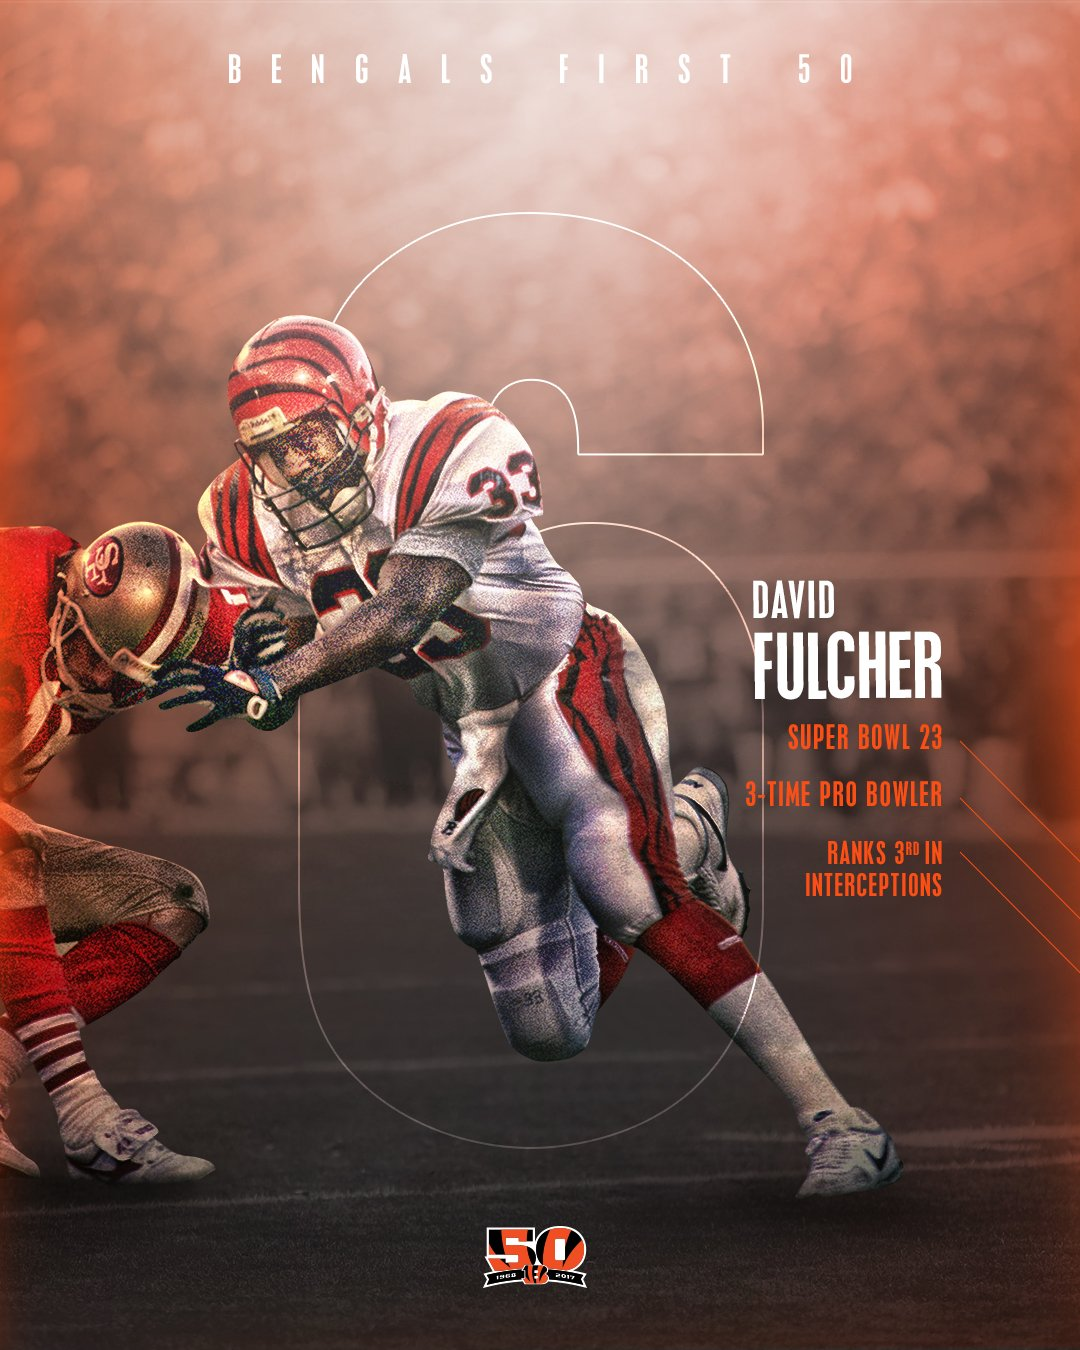 6 days until the start of our 50th Season! #BALvsCIN  Number 6 on the #Bengals First 50: David Fulcher  #Bengals50 https://t.co/ON5sEszErW